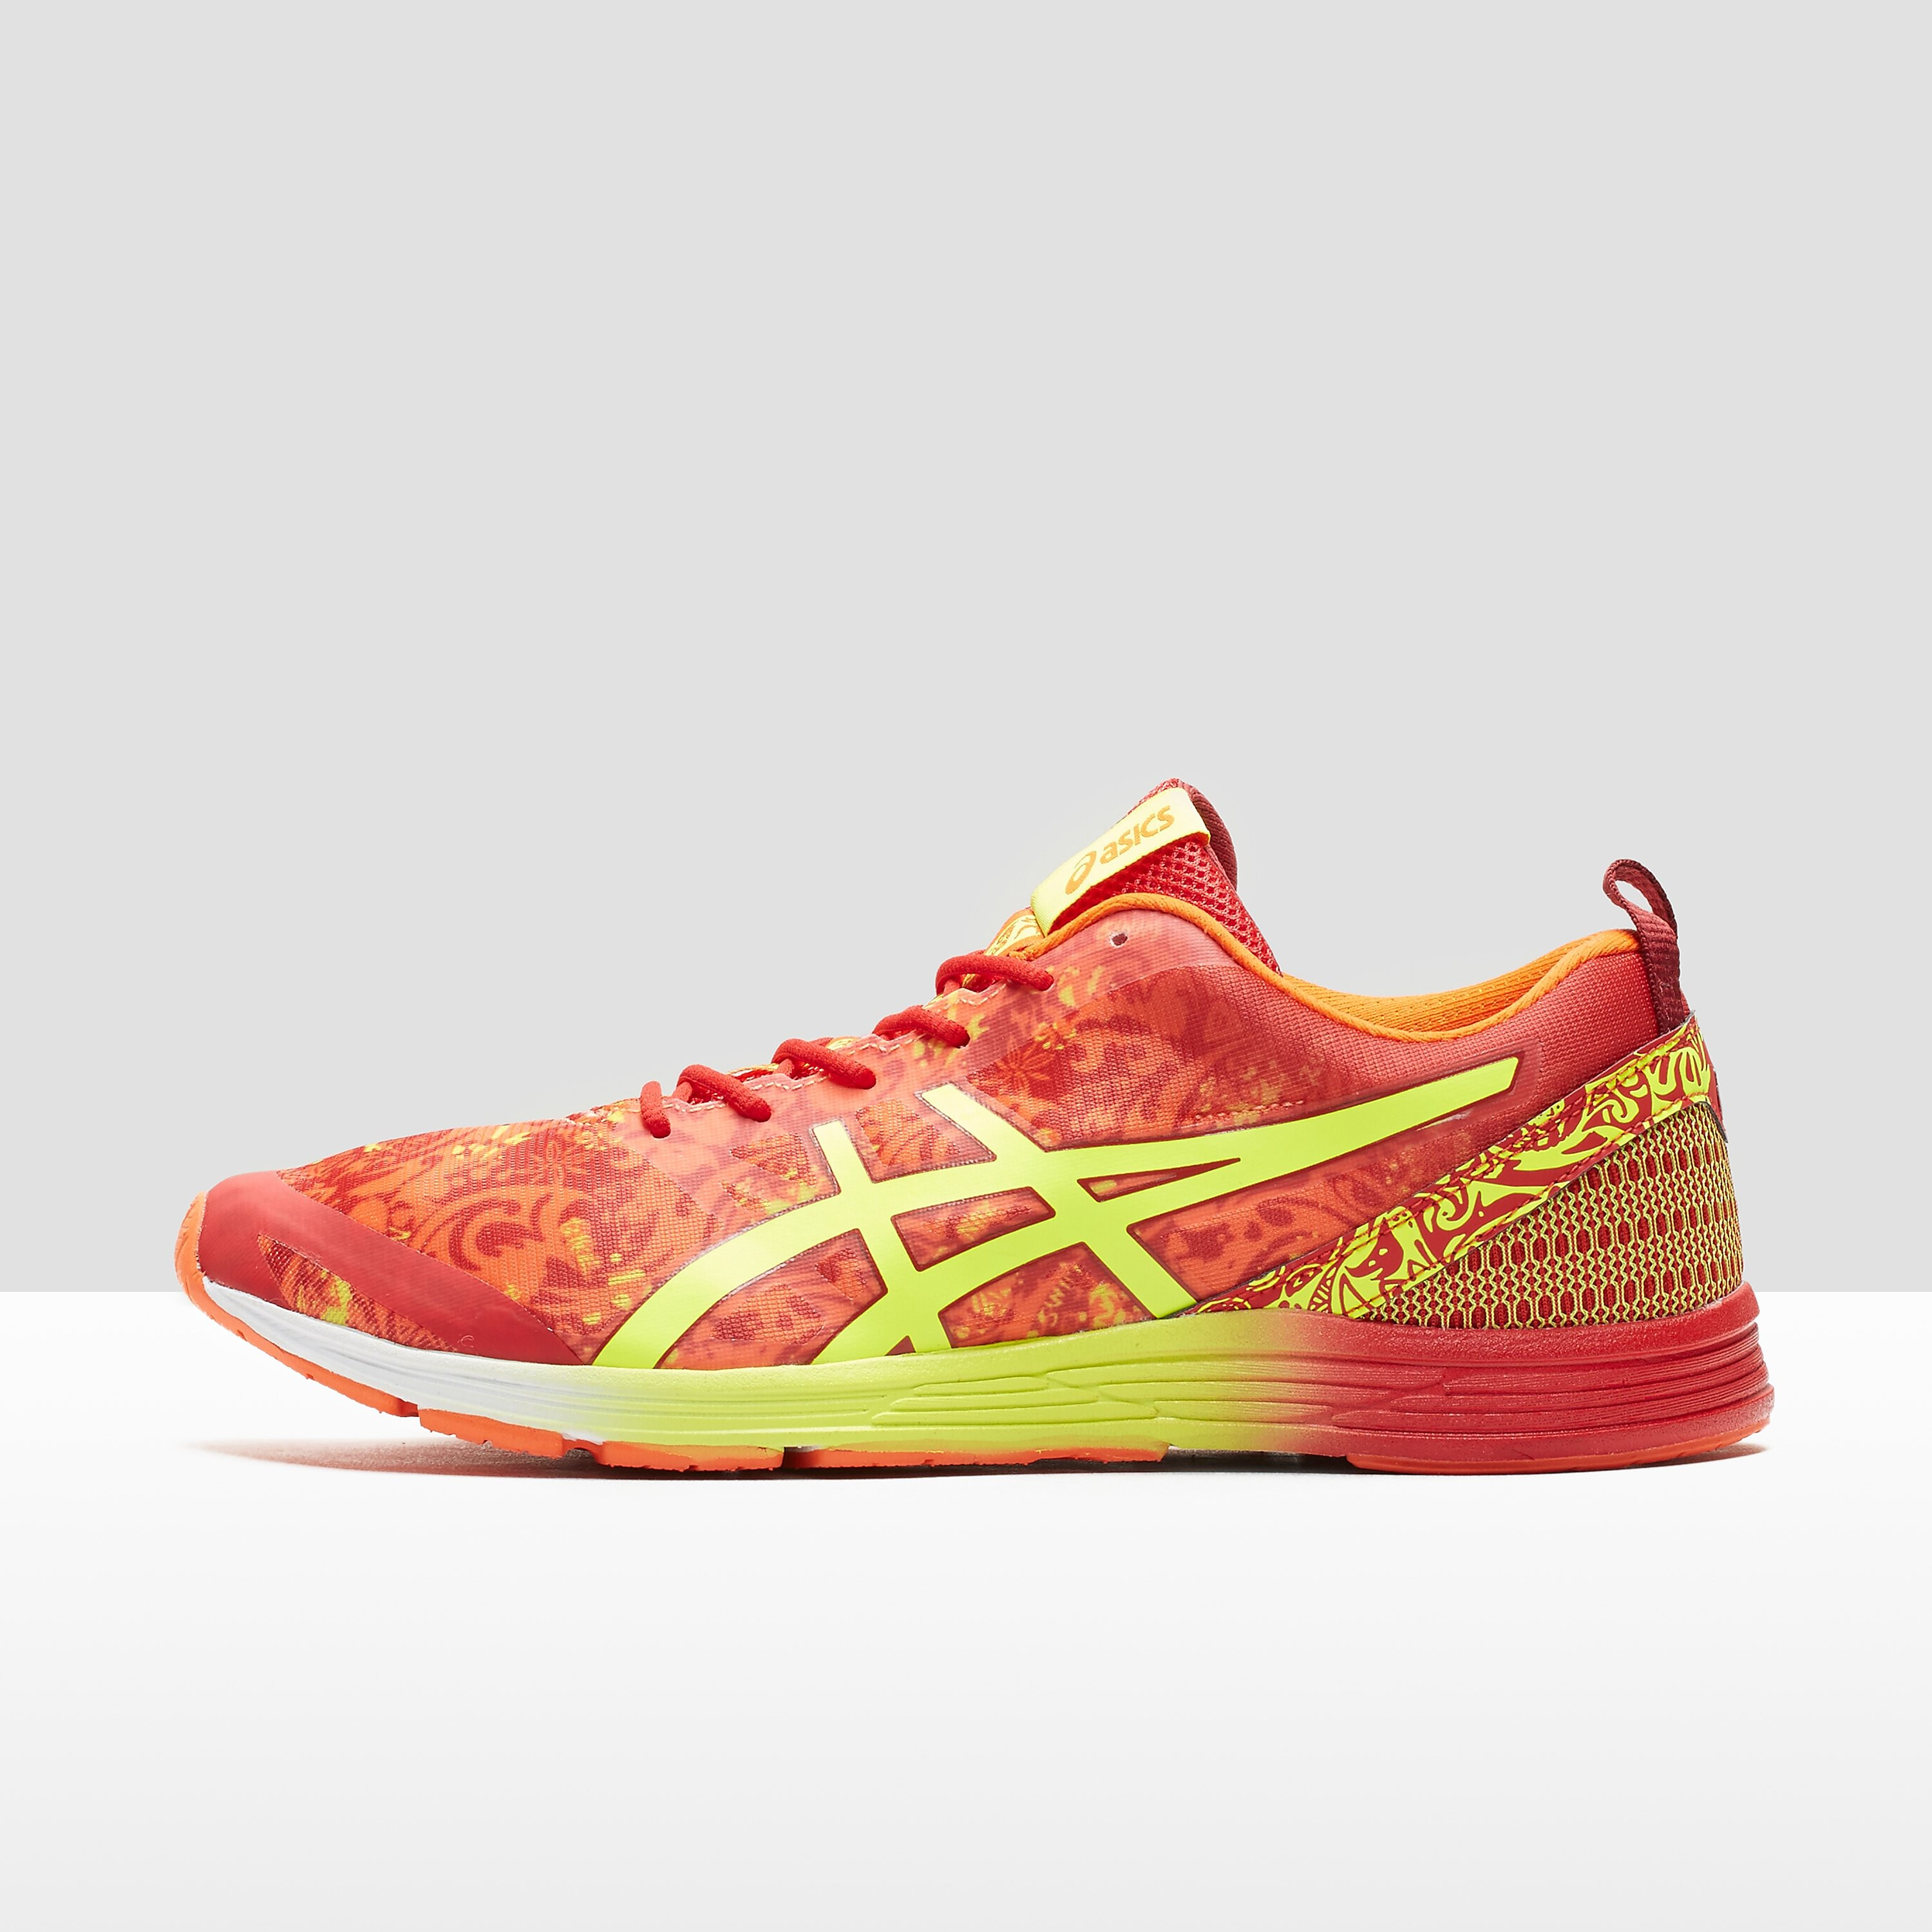 Asics GEL-HYPER TRI 2 Men's Running Shoes